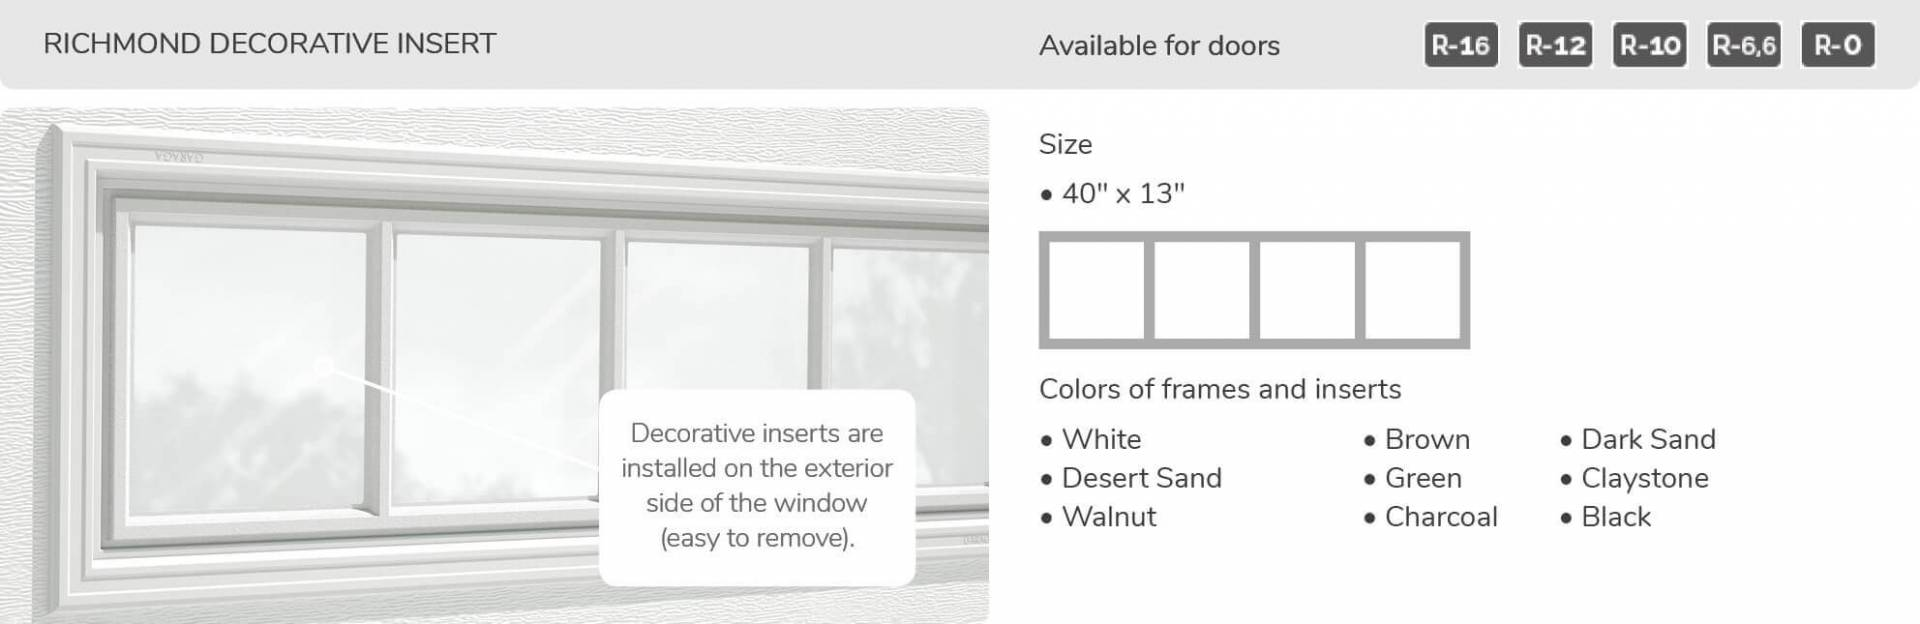 Richmond Decorative Insert, 40' x 13', available for doors: R-16, R-12, R-10, R-6.6, R-0